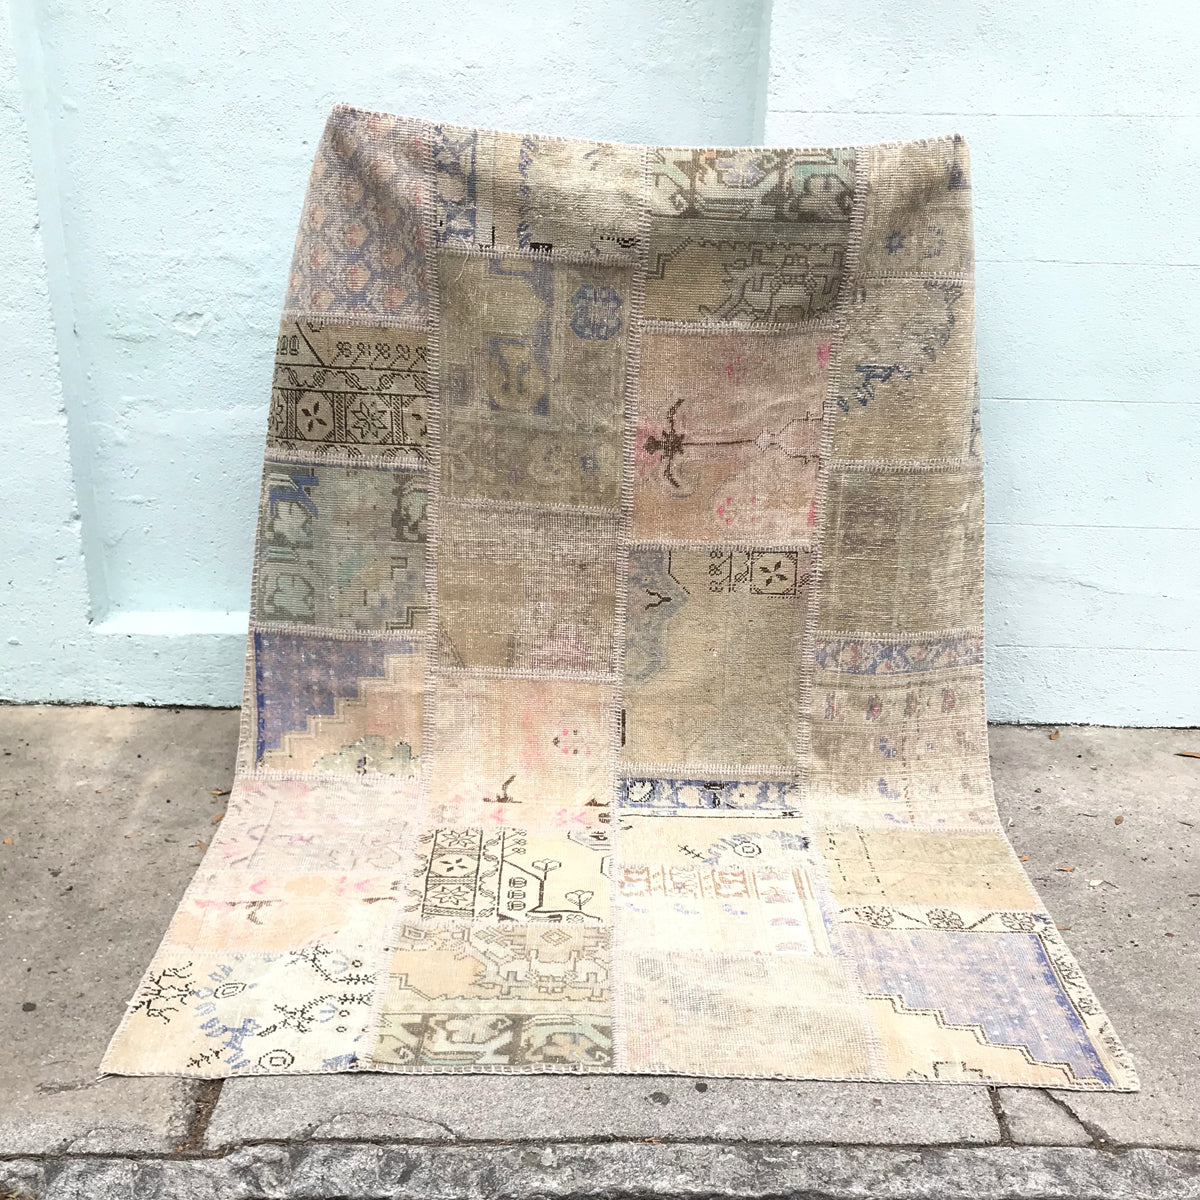 This beautiful handwoven vintage Turkish patchwork rug has a neutral background with pink, periwinkle, and teal accents. Very pretty contrast and design. 63x89 inches.